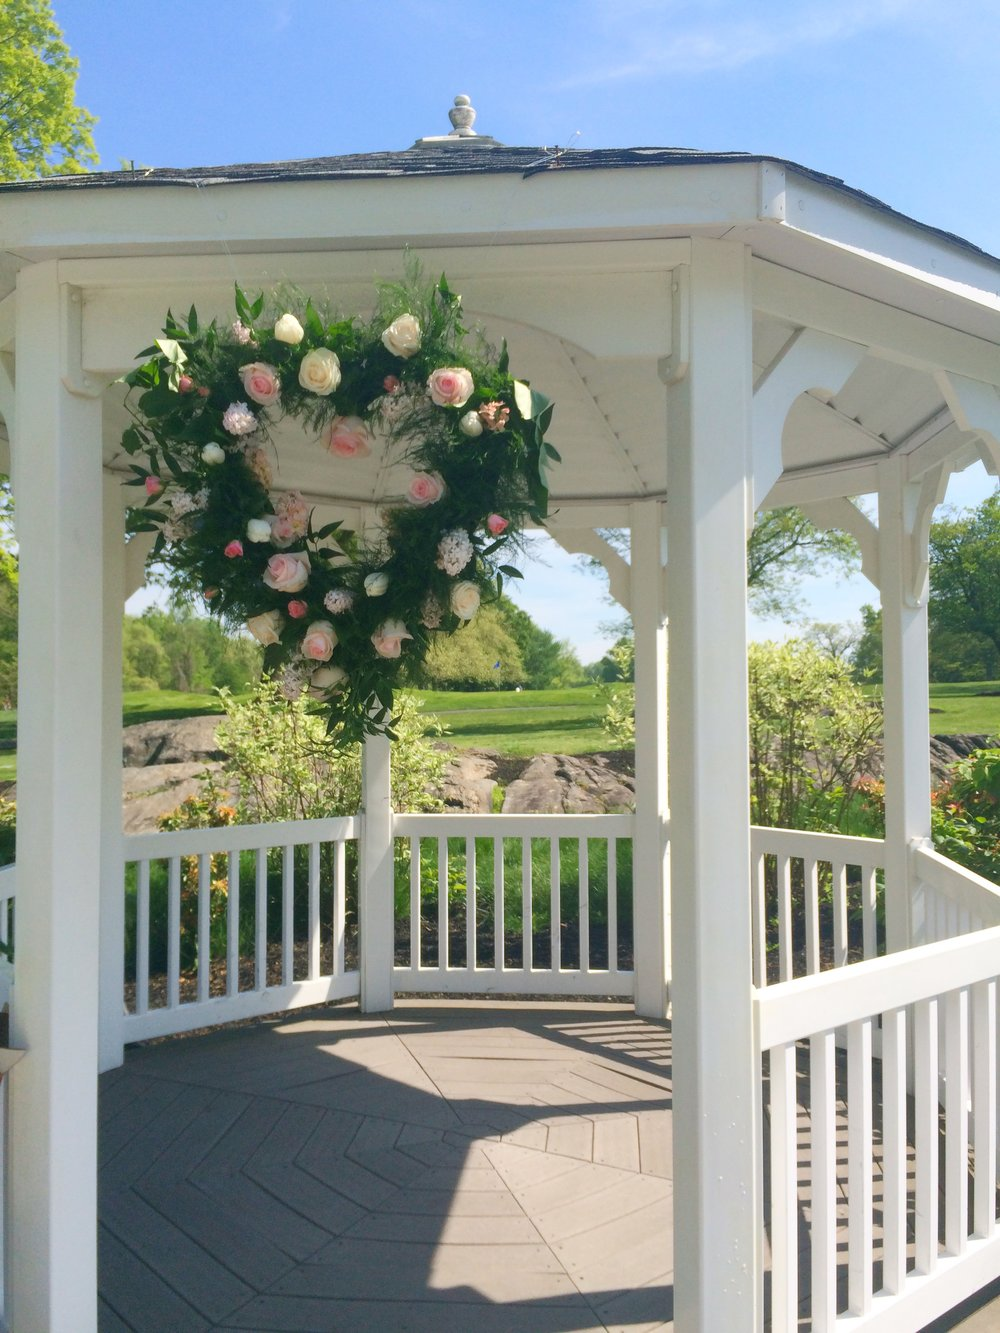 Evelisa Floral & Design: Gazebo flowers